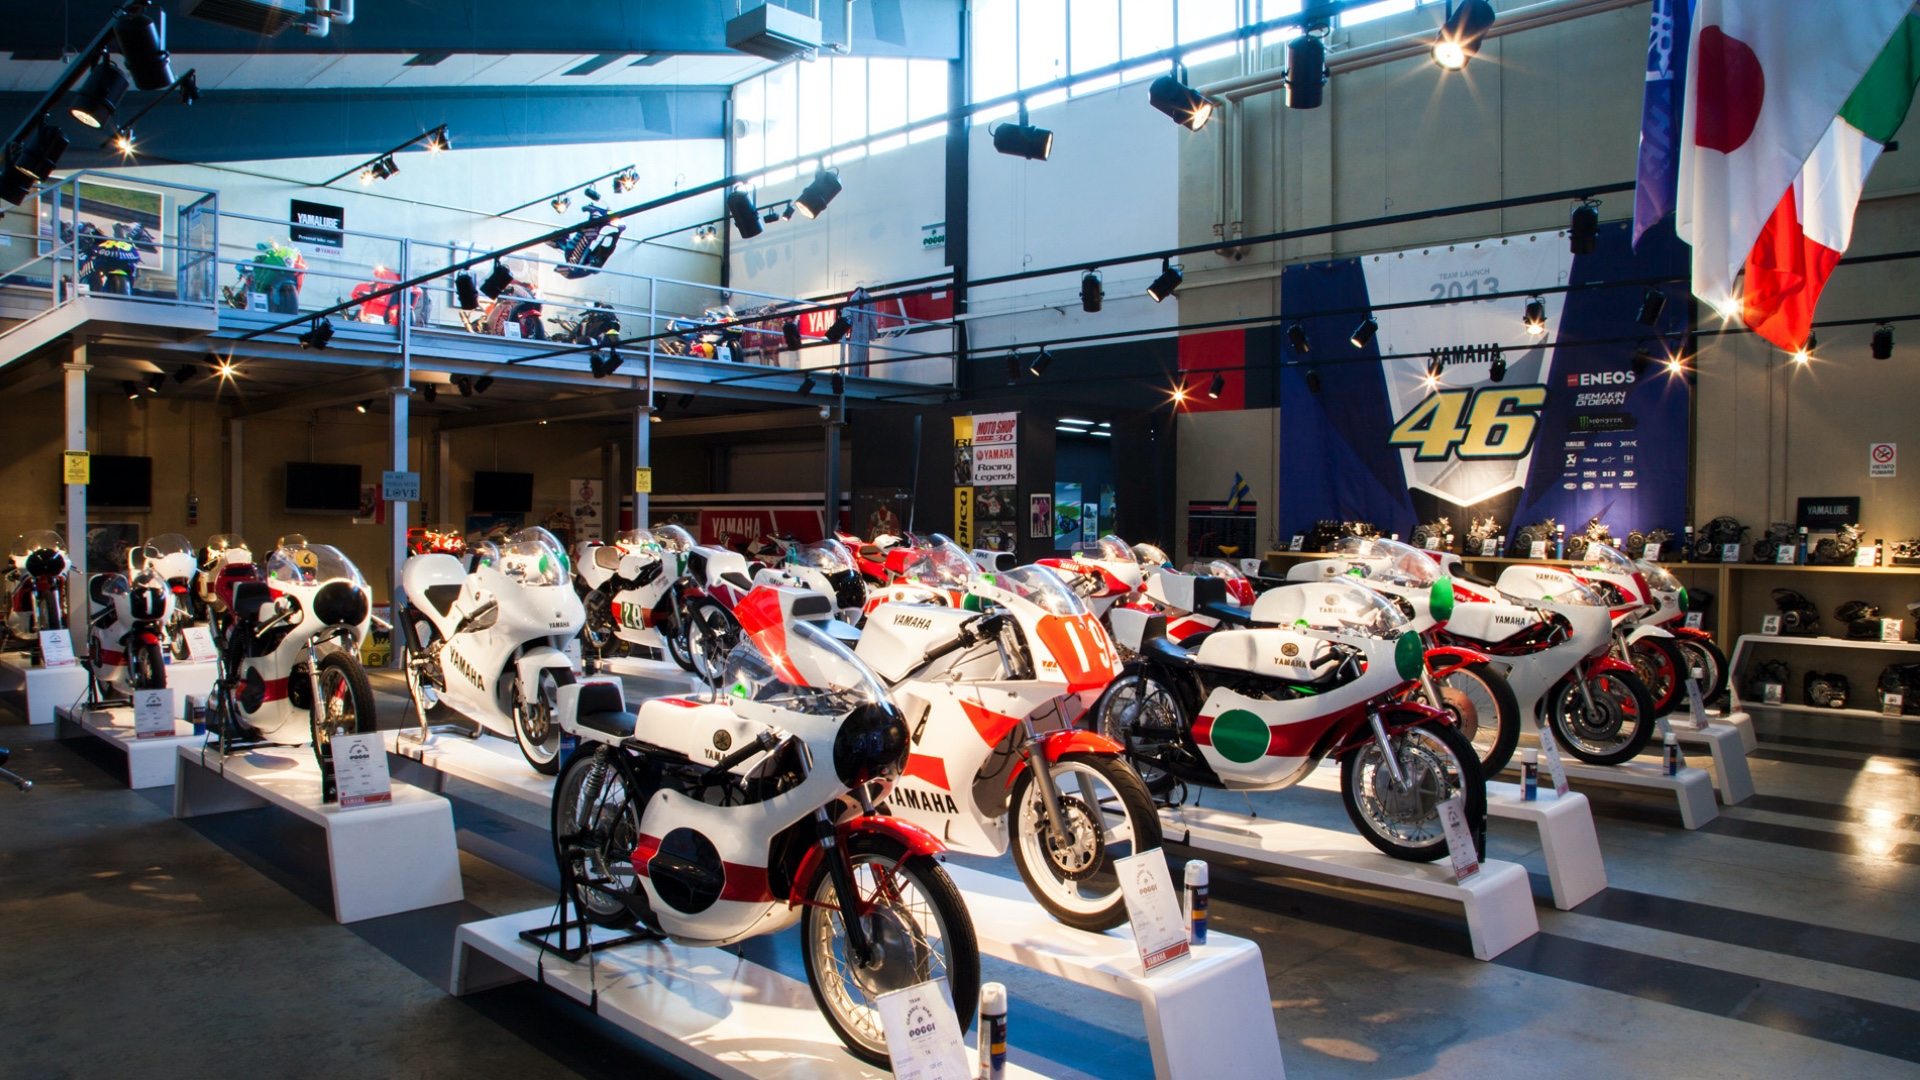 The Yamaha story (and others) in the COMP Poggi Moto Collection.